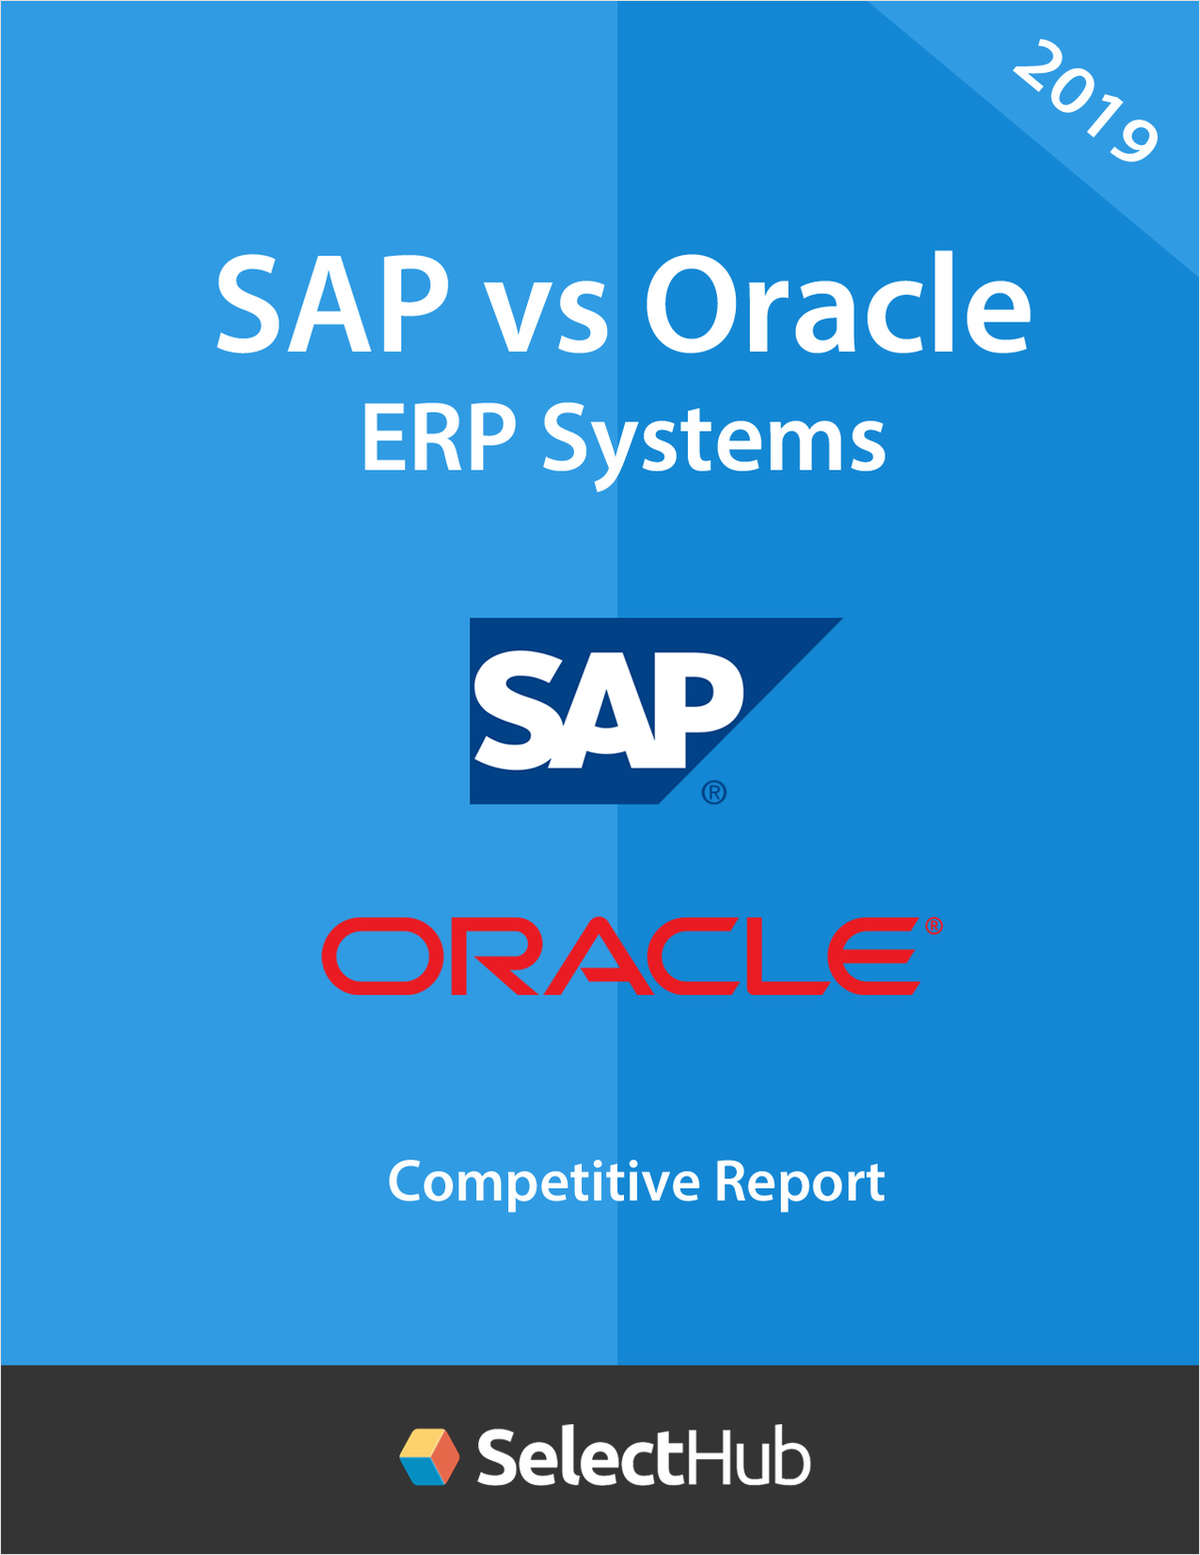 SAP vs. Oracle ERP Systems: Head-to-Head in 2019